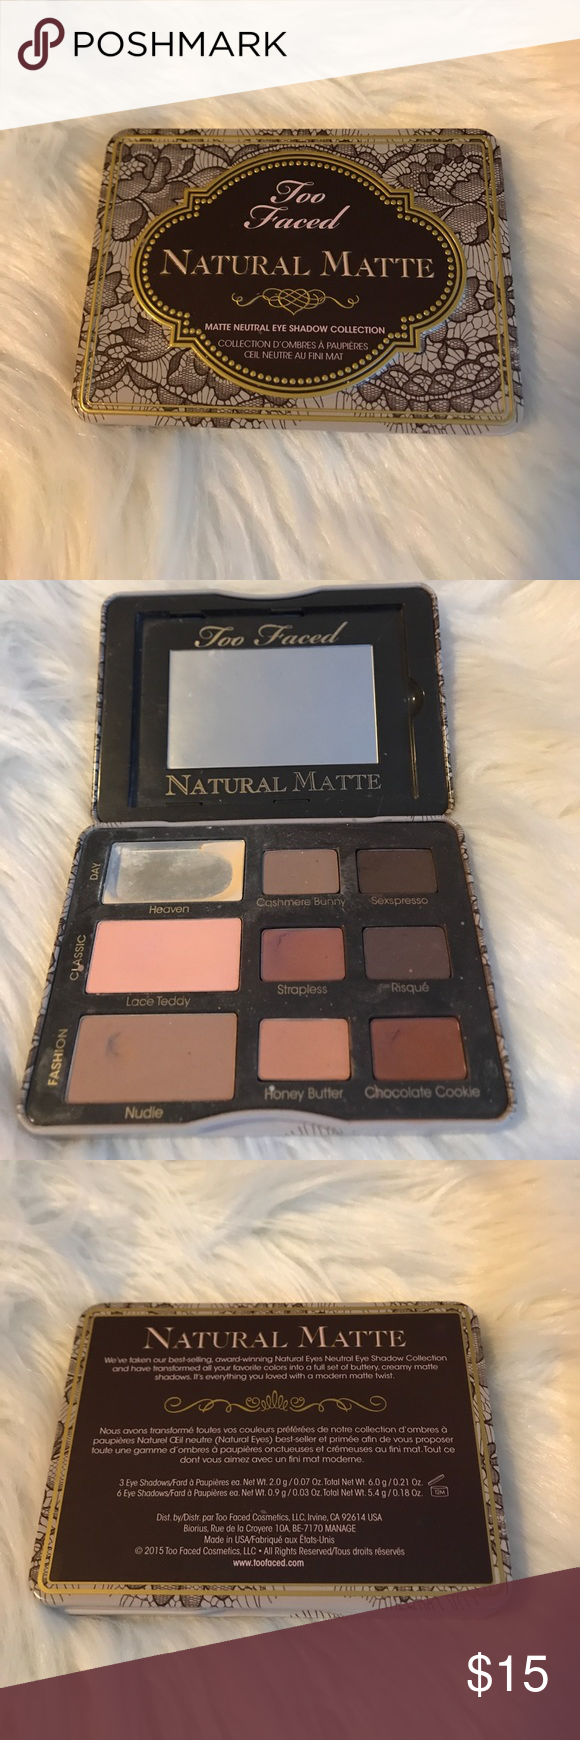 Too Faced Natural Matte Eyeshadow Palette 9 shades in this very small compact palette great for a vacation! Just used the bone shade as you can see Too Faced Makeup Eyeshadow